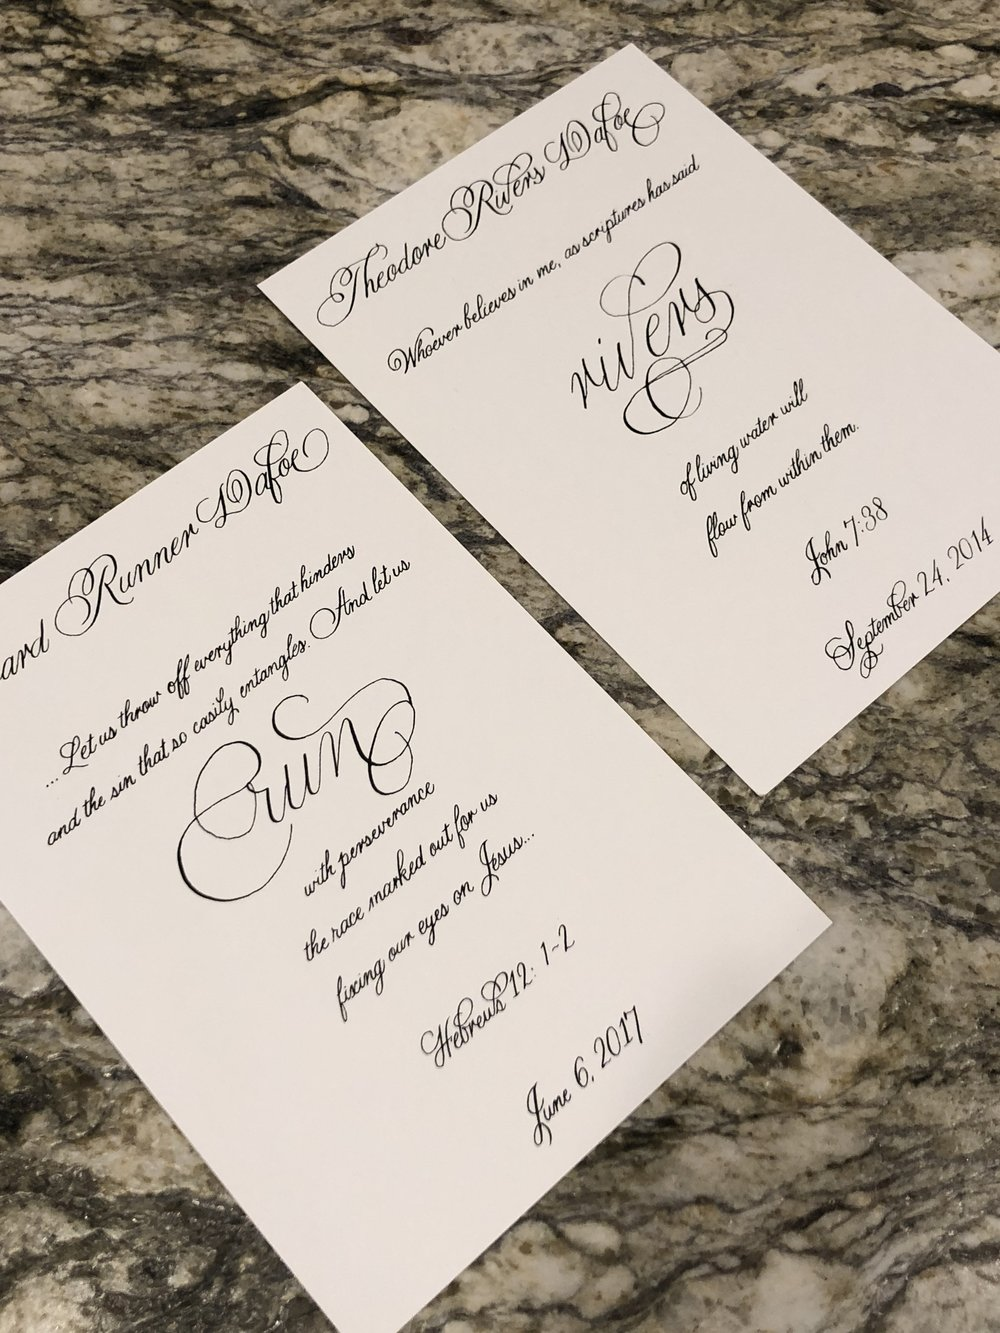 Central PA, York PA, JesSmith Designs, custom, wedding, invitations, bridal, Harrisburg, hanover, calligraphy, baltimore, wedding invitations, lancaster, gettysburg, 06-27 19.58.30.jpg